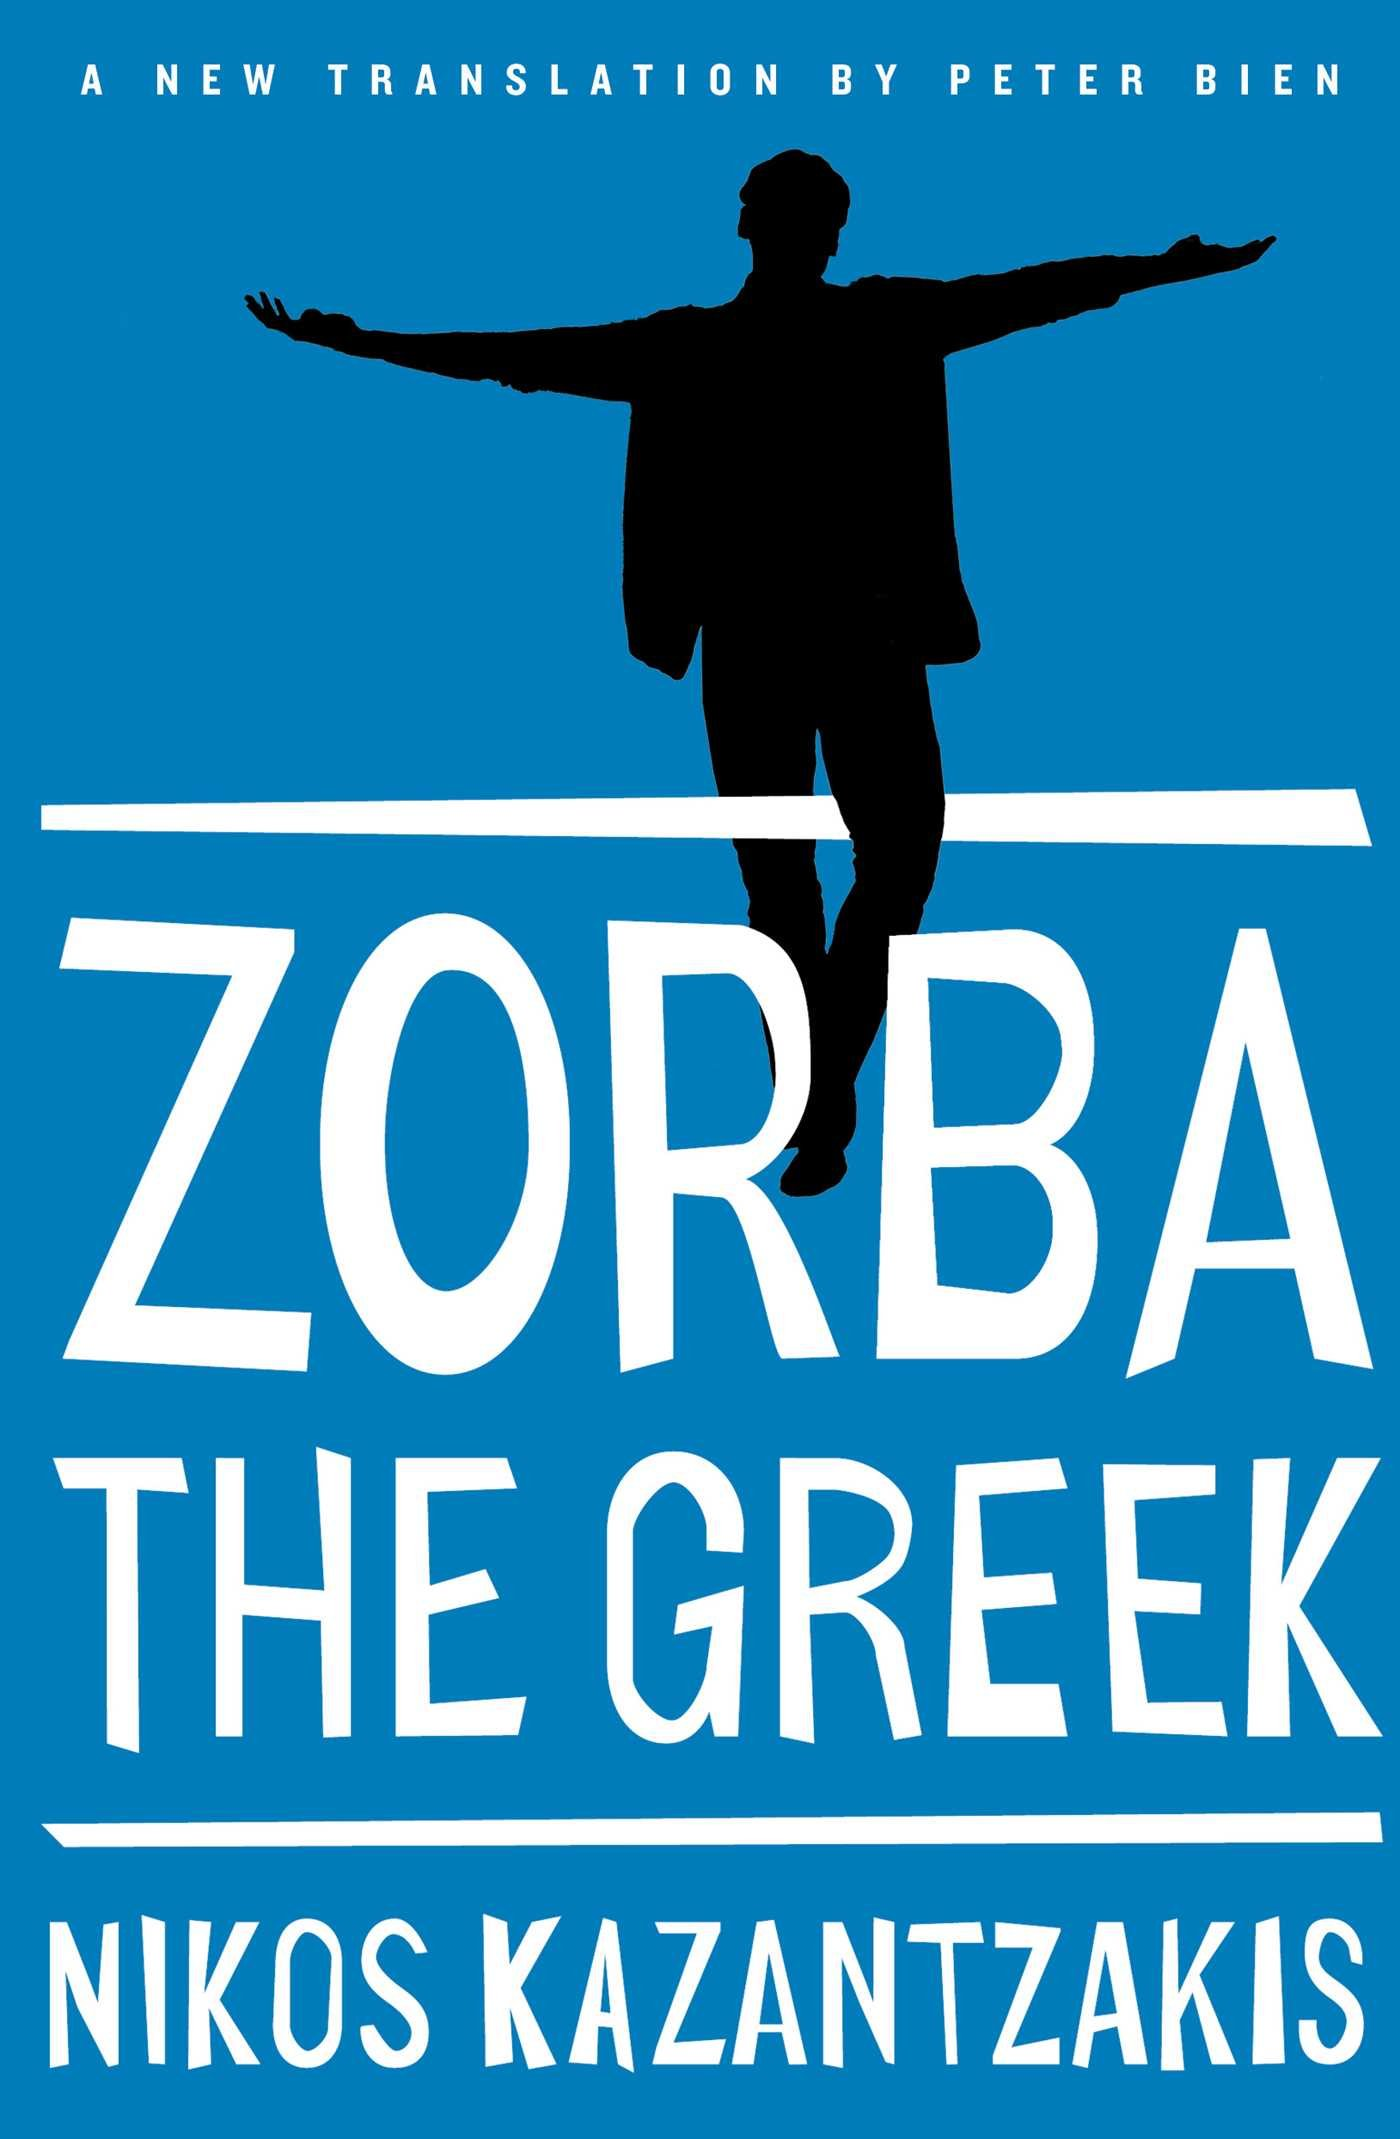 Zorba the Greek: Nikos Kazantzakis, Peter Bien: 9781476782812 ...